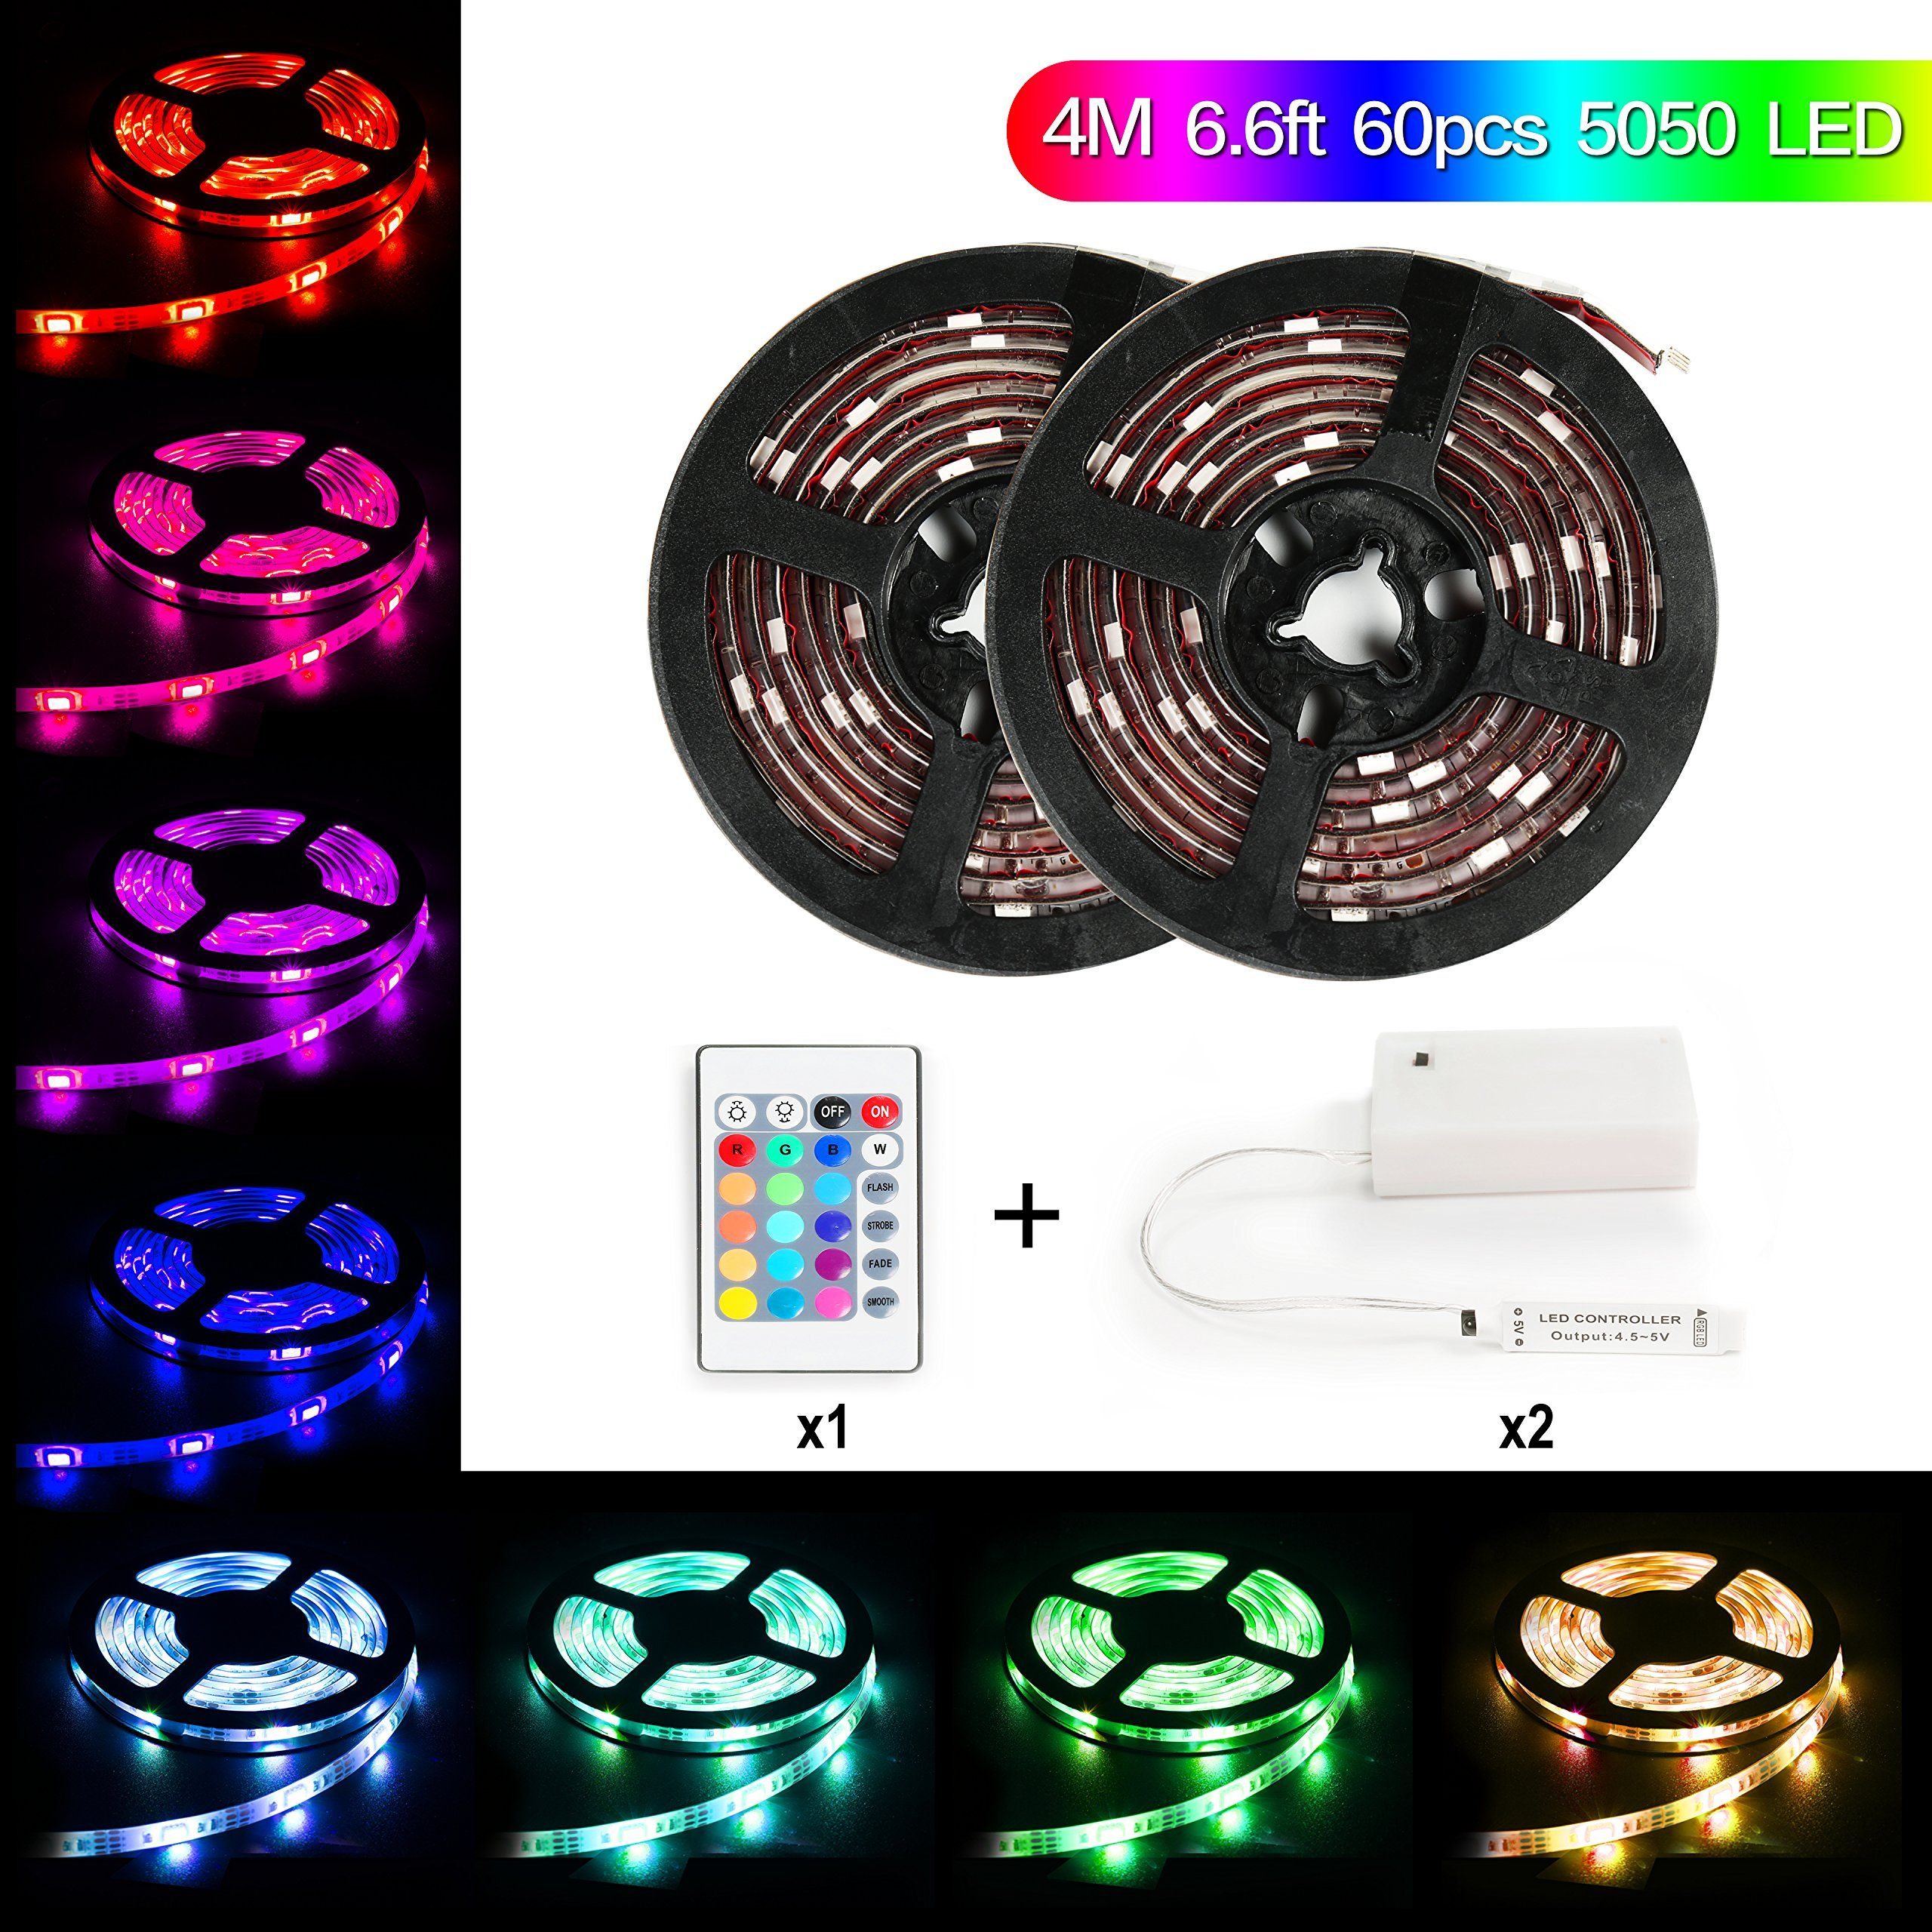 Led Light Strips Battery Powered Amusing Led Light Strip Battery Powered,meilly 2Reels  Rgb 4M  133Ft Inspiration Design